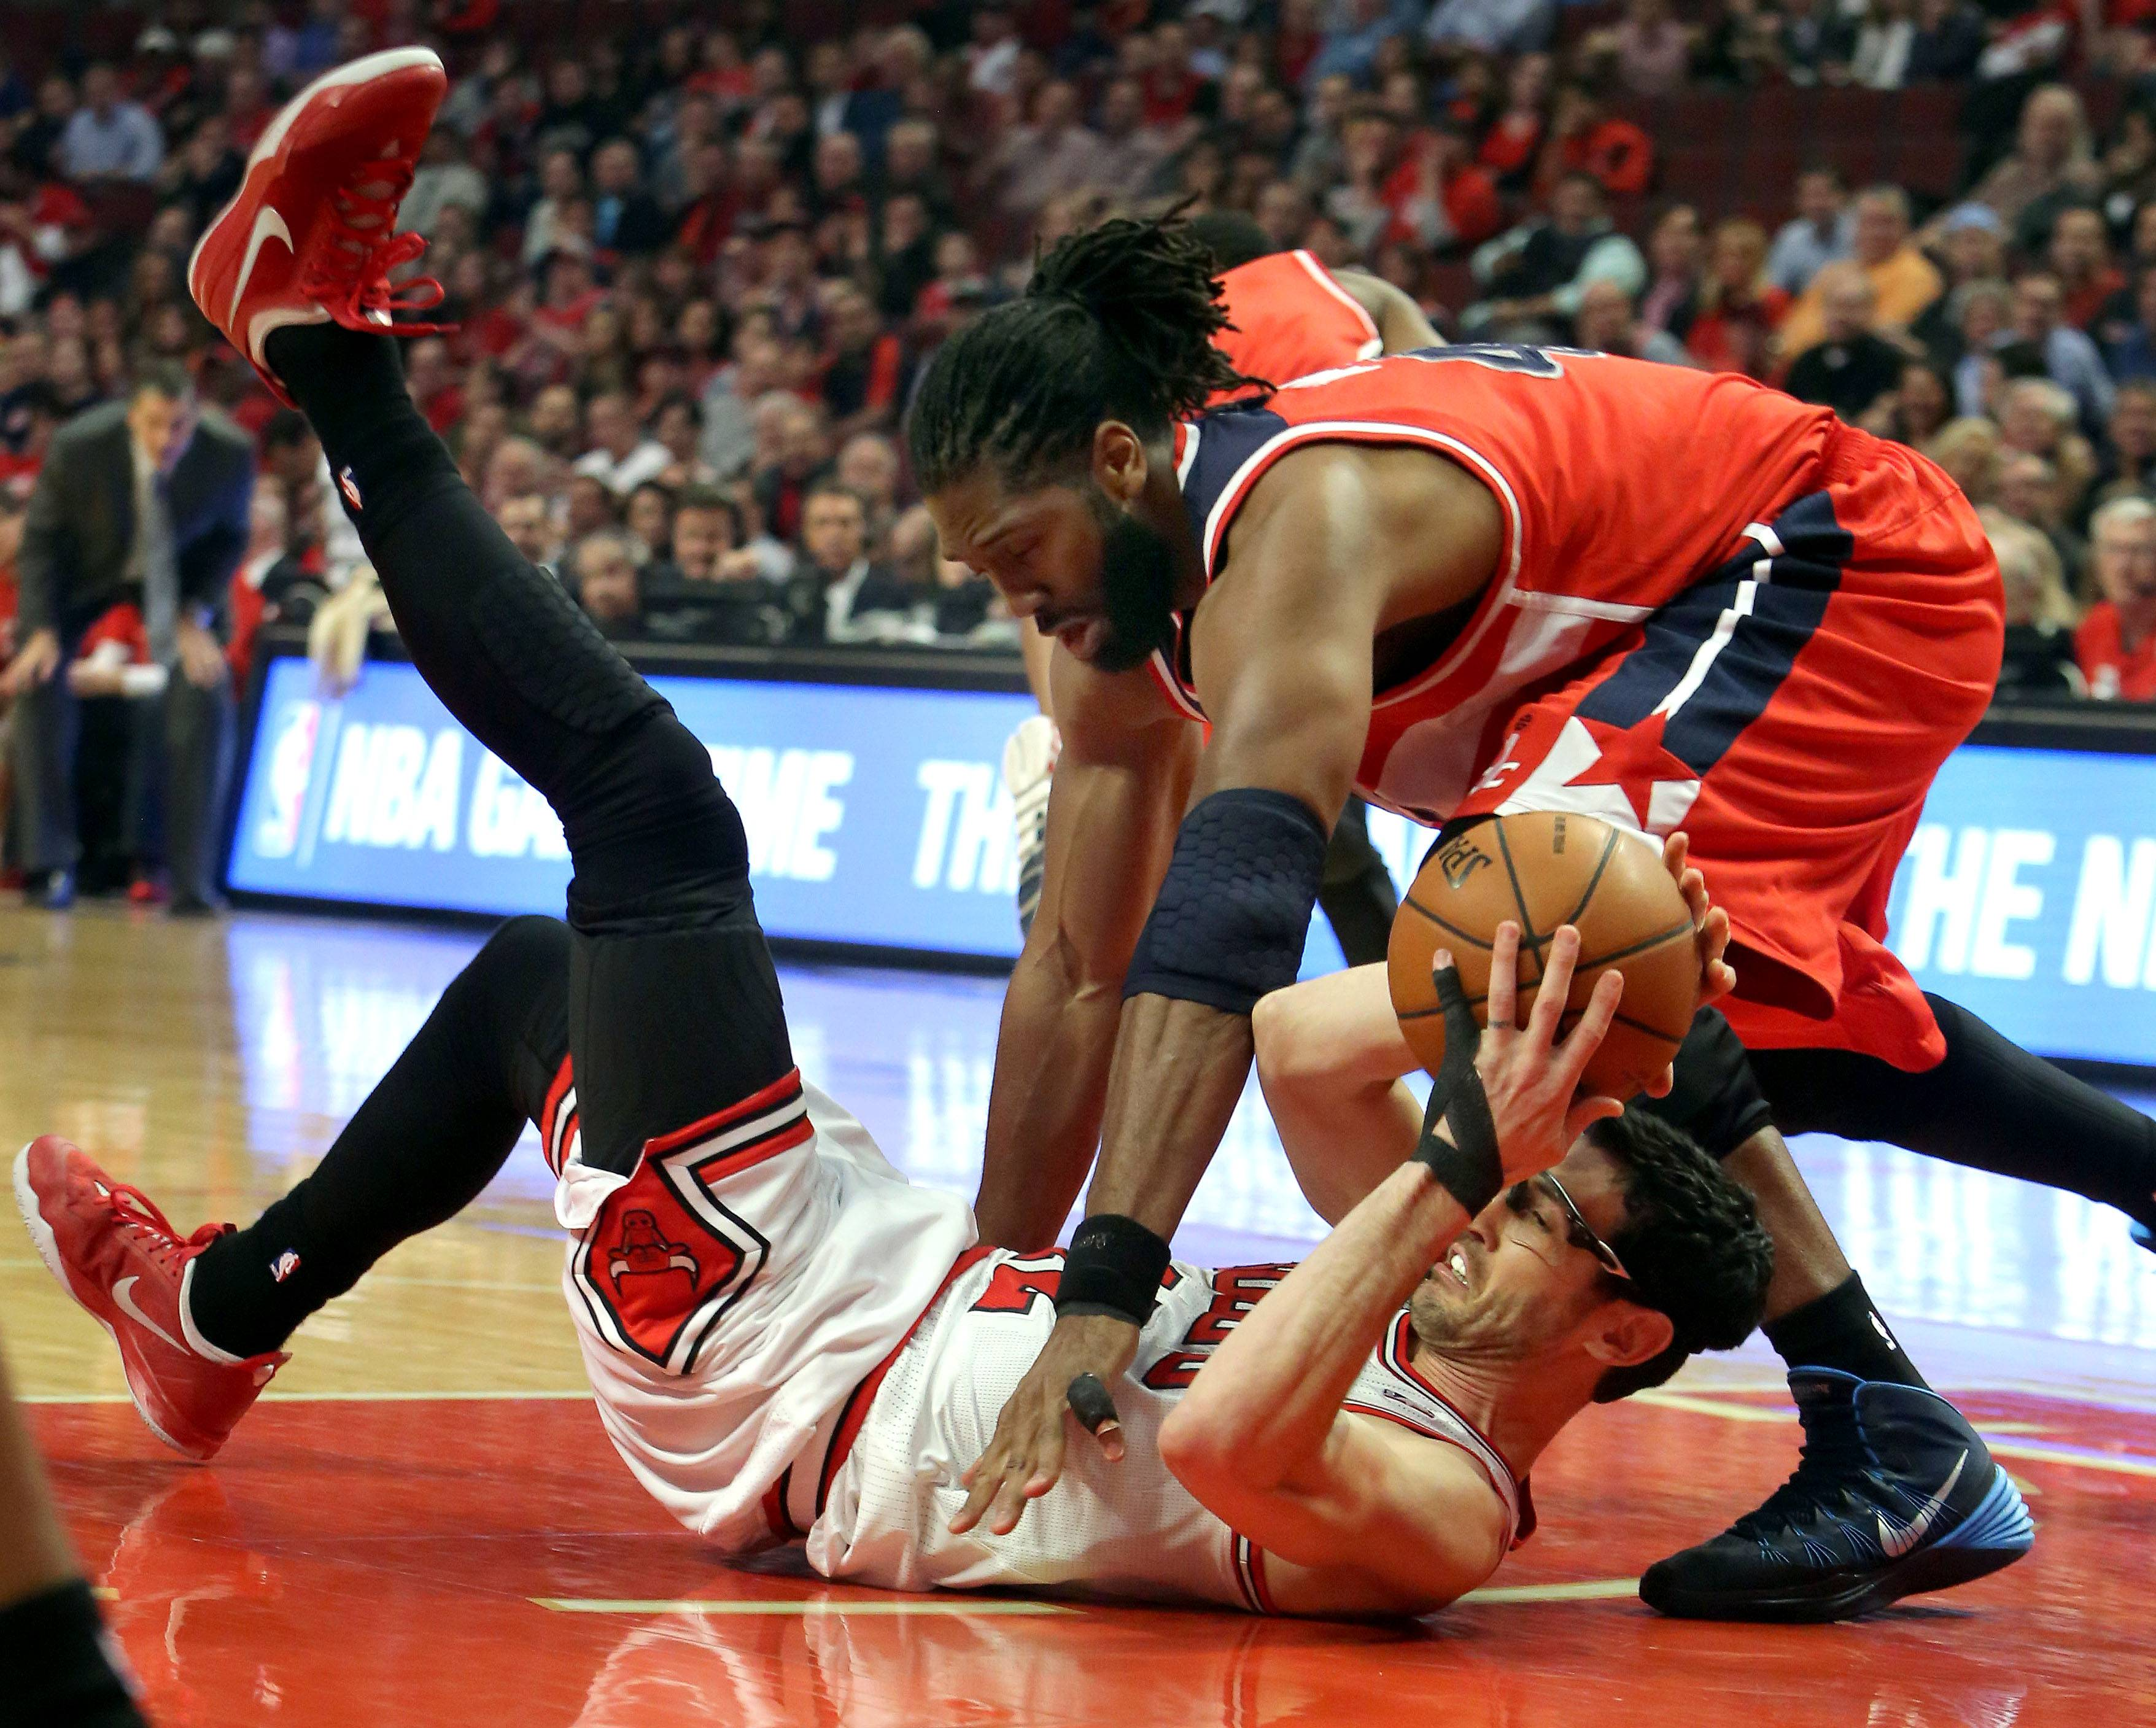 Chicago Bulls guard Kirk Hinrich scrambles for a loose ball with Washington Wizards forward Nene Hilario.